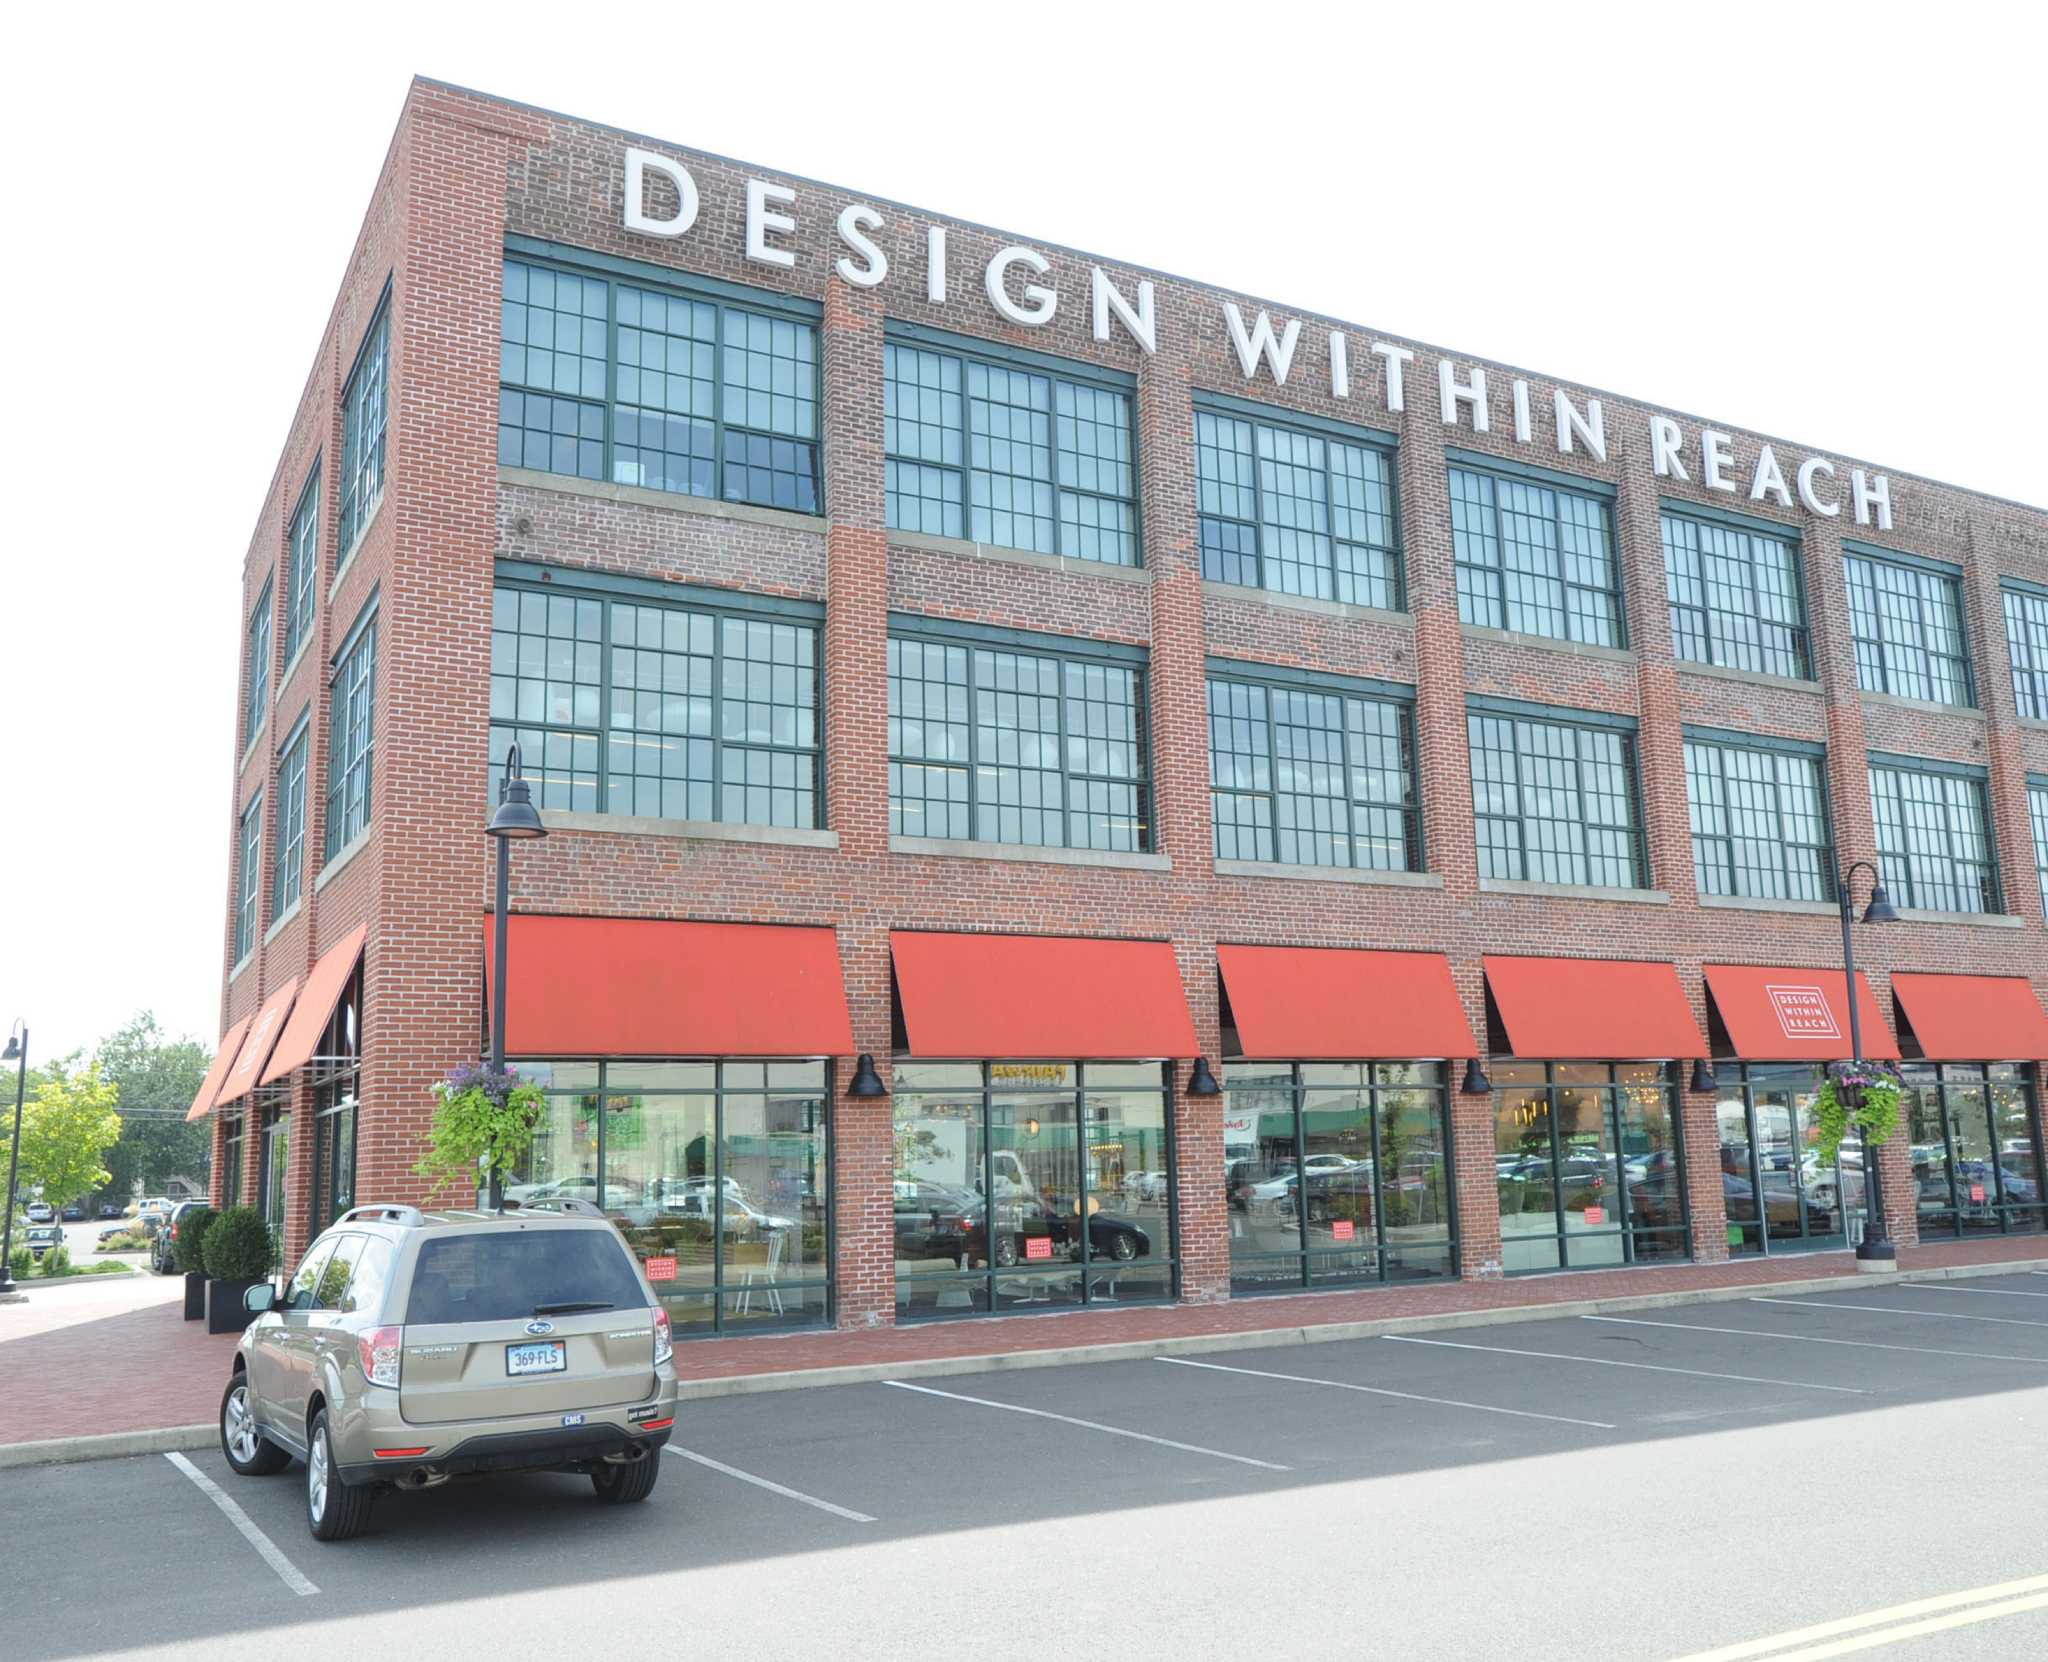 Design Within Reach Stamford.New Owner Says Design Within Reach Stays In Stamford